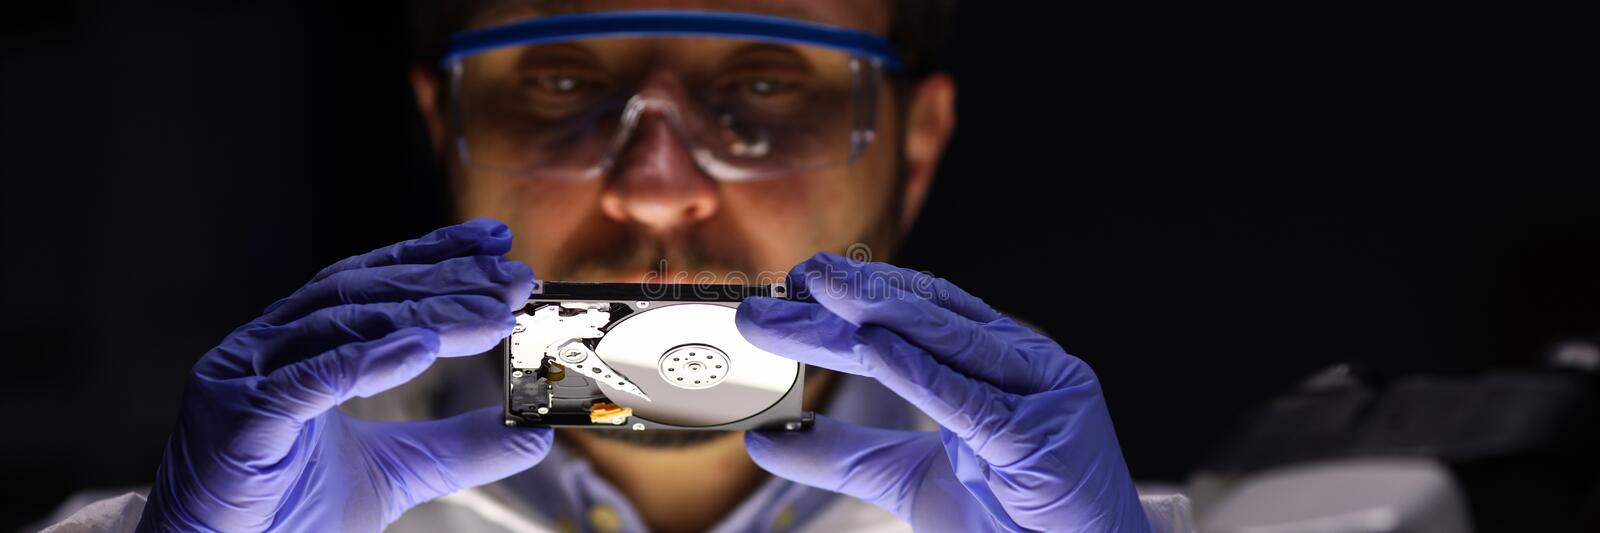 Computer master holding hdd. Portrait of specialist in eyewear looking at rigid disc. Man examining pc detail. Worker checking detail condition. Small hard disk stock photos